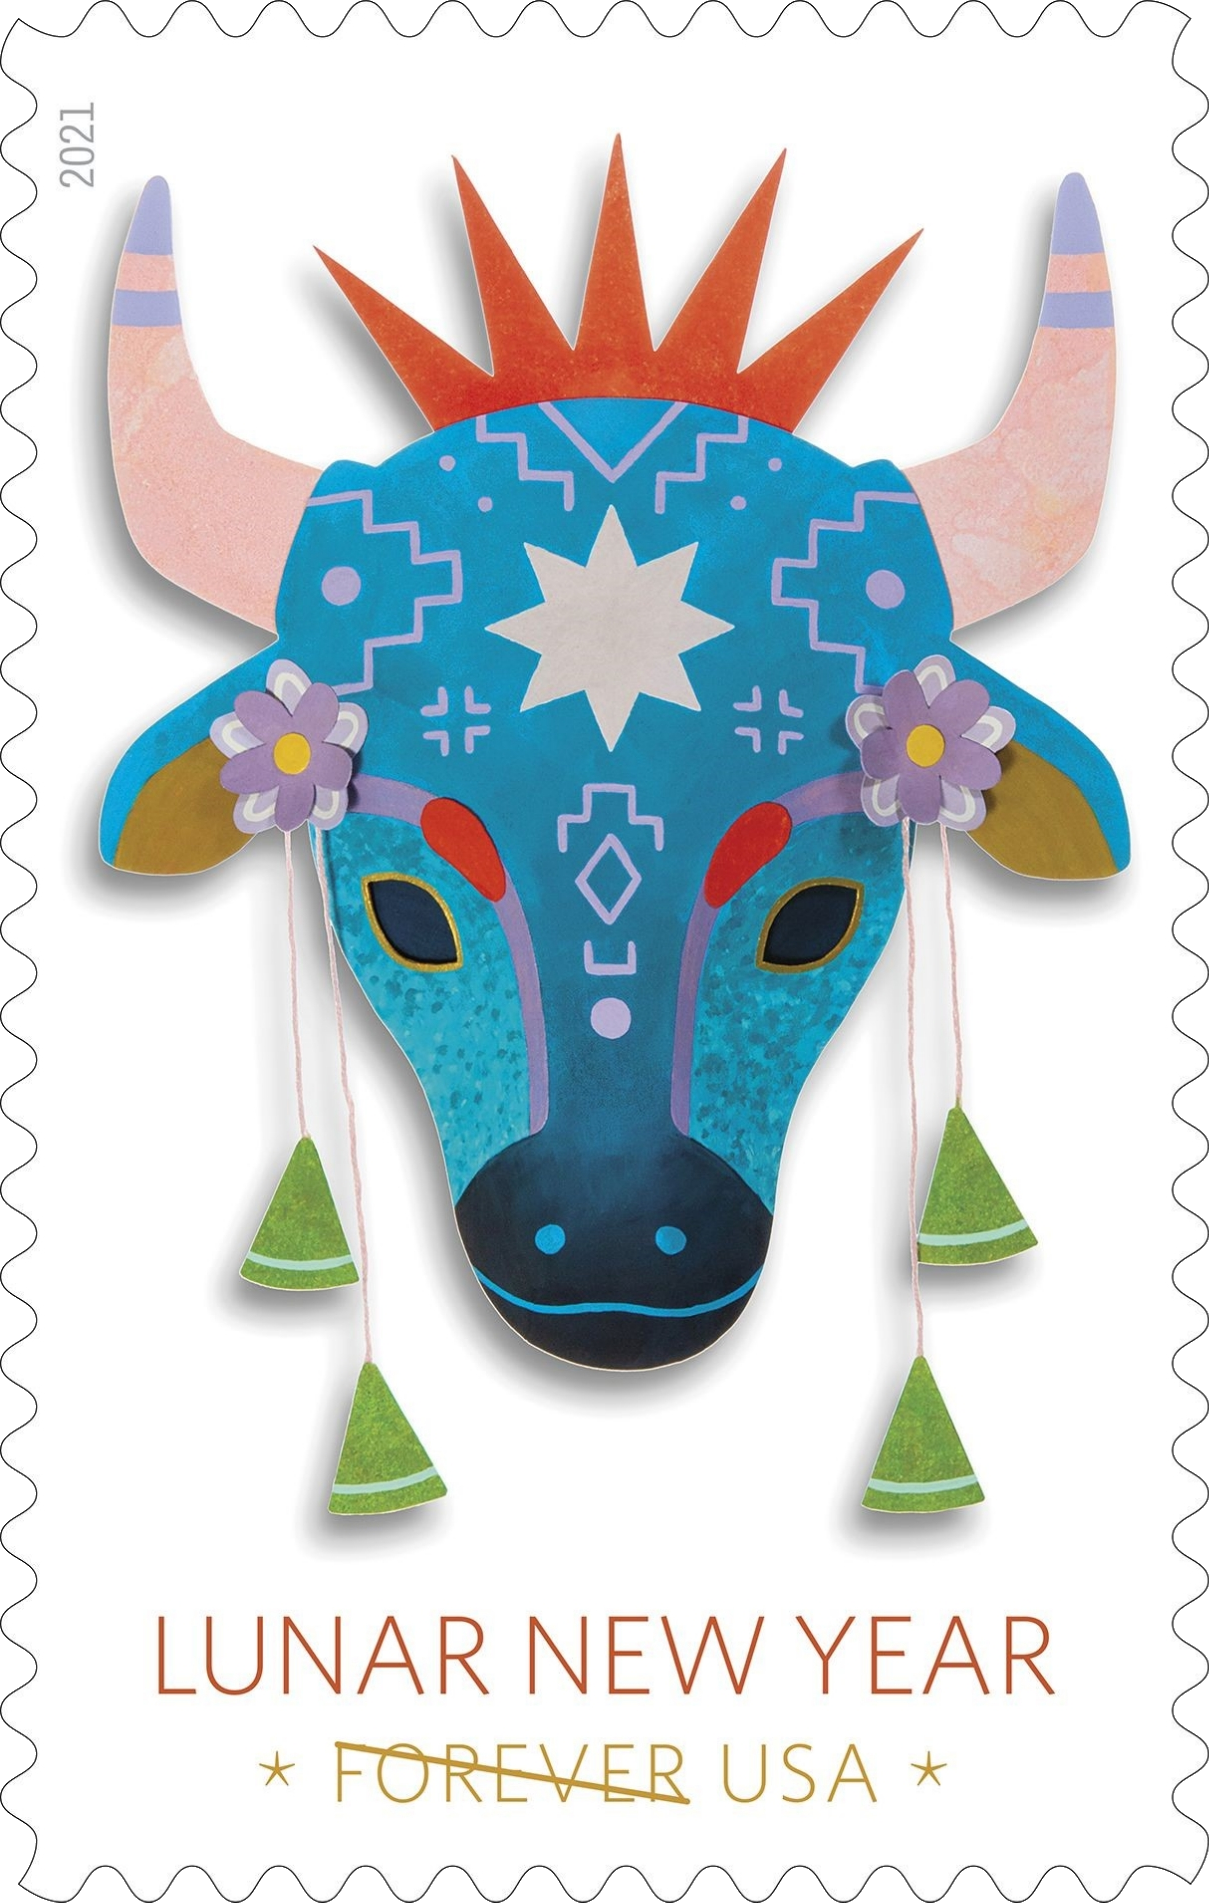 United States: Lunar New Year - Year of the Ox, 2 February 2021